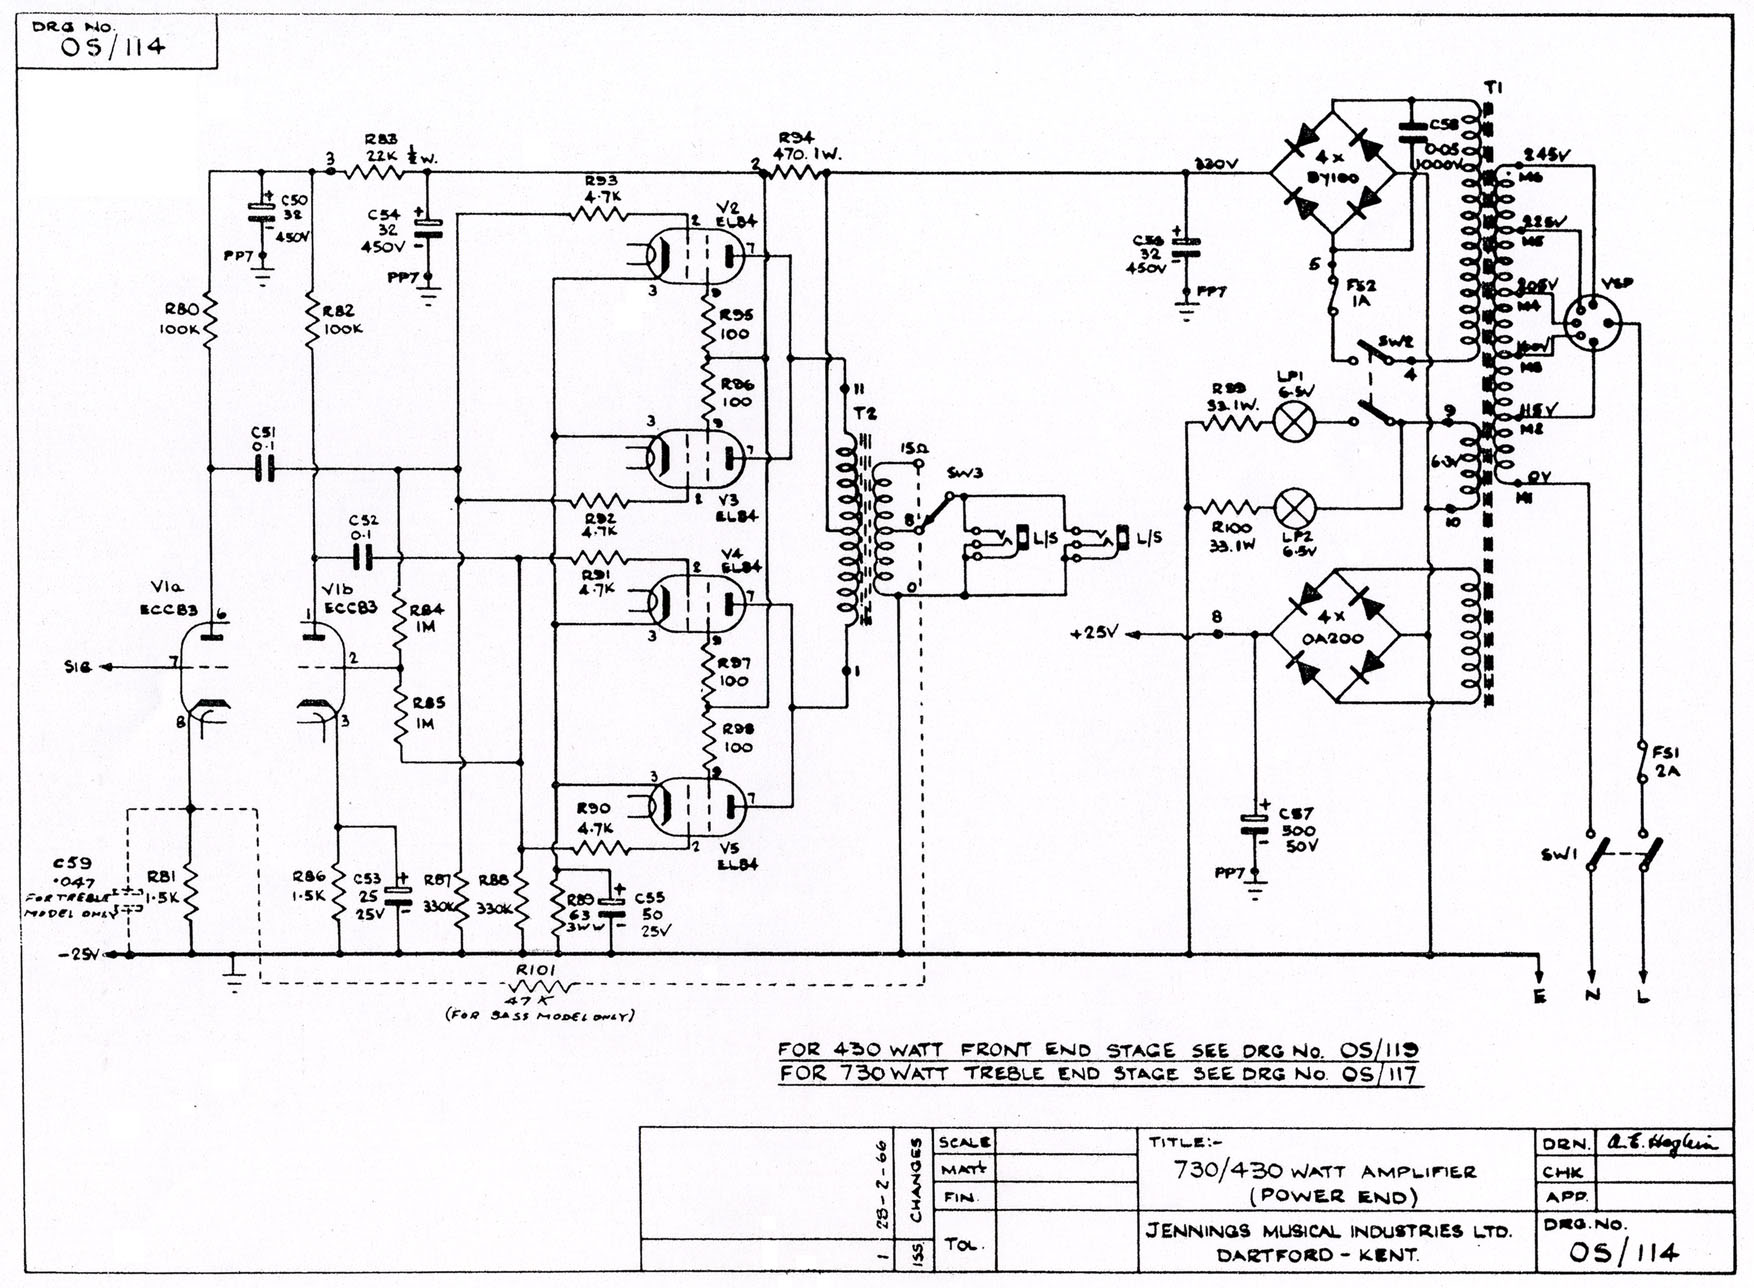 The Vox UL730 power section schematic – OS/114